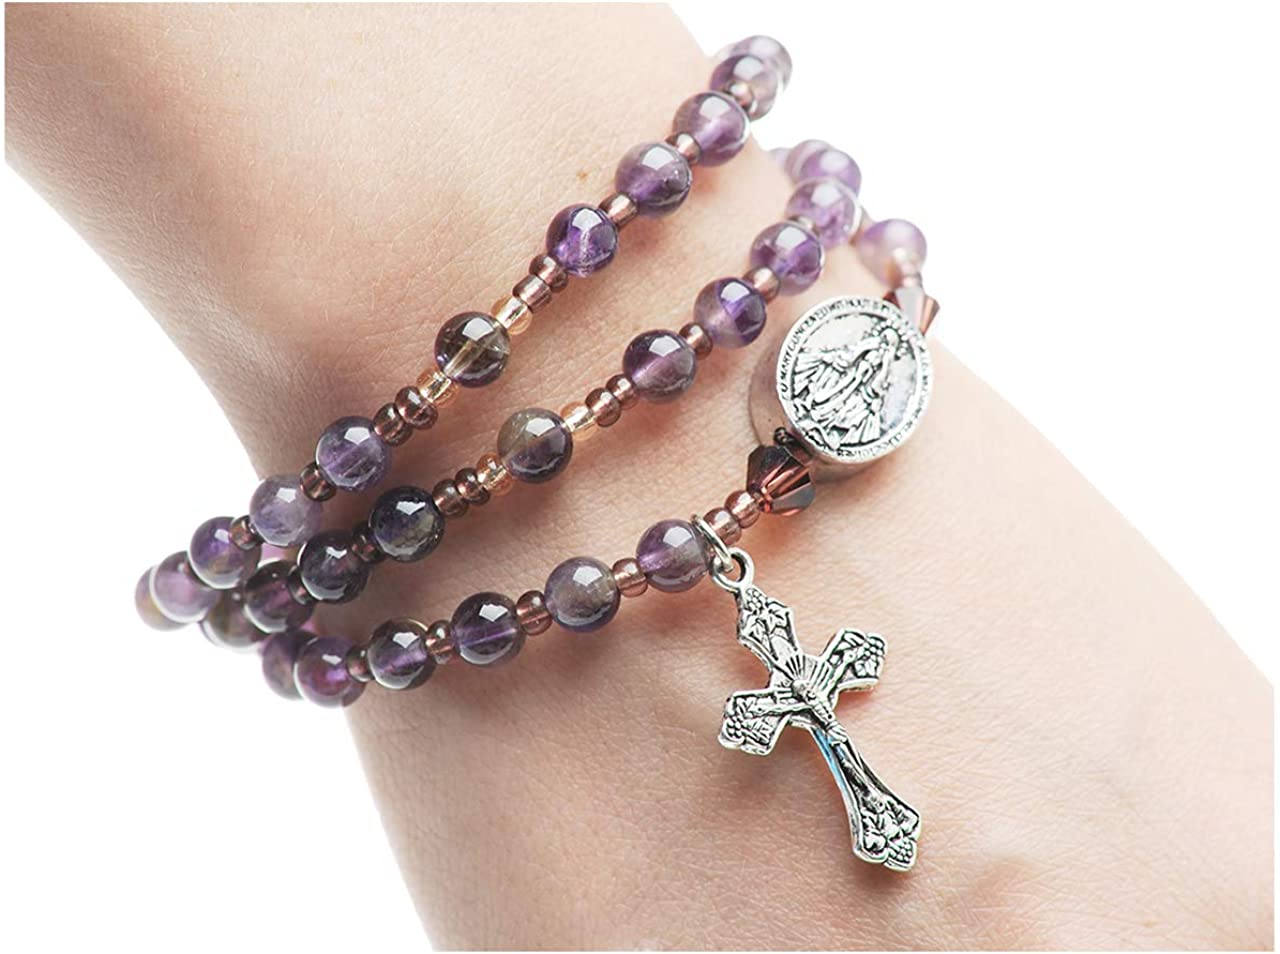 6mm Genuine Outlet sale feature Amethyst Beads Full Twistable Rosary Sales for sale Stretchable and